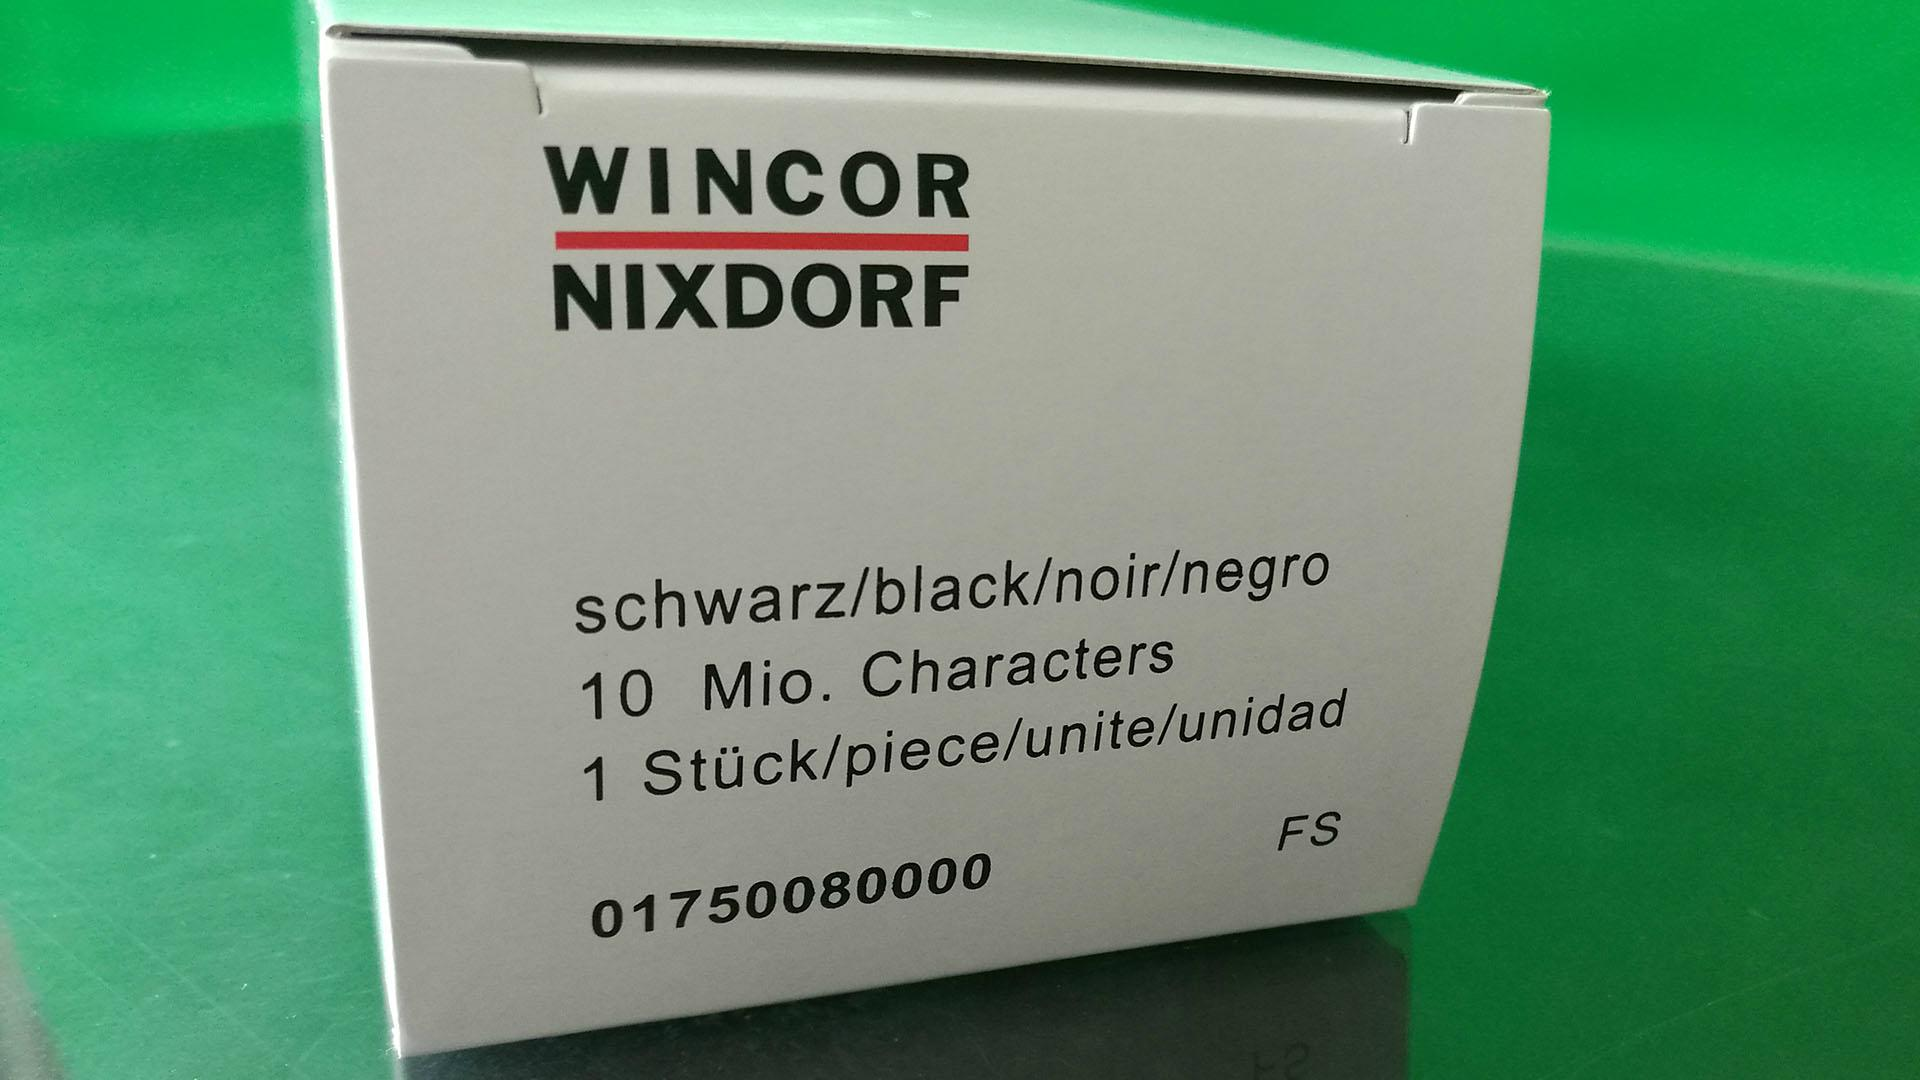 WINCOR NIXDORF HPR4915/HPR4915+/HPR4915xe/HPR4915 Plus/HPR4920 ribbon cartridge